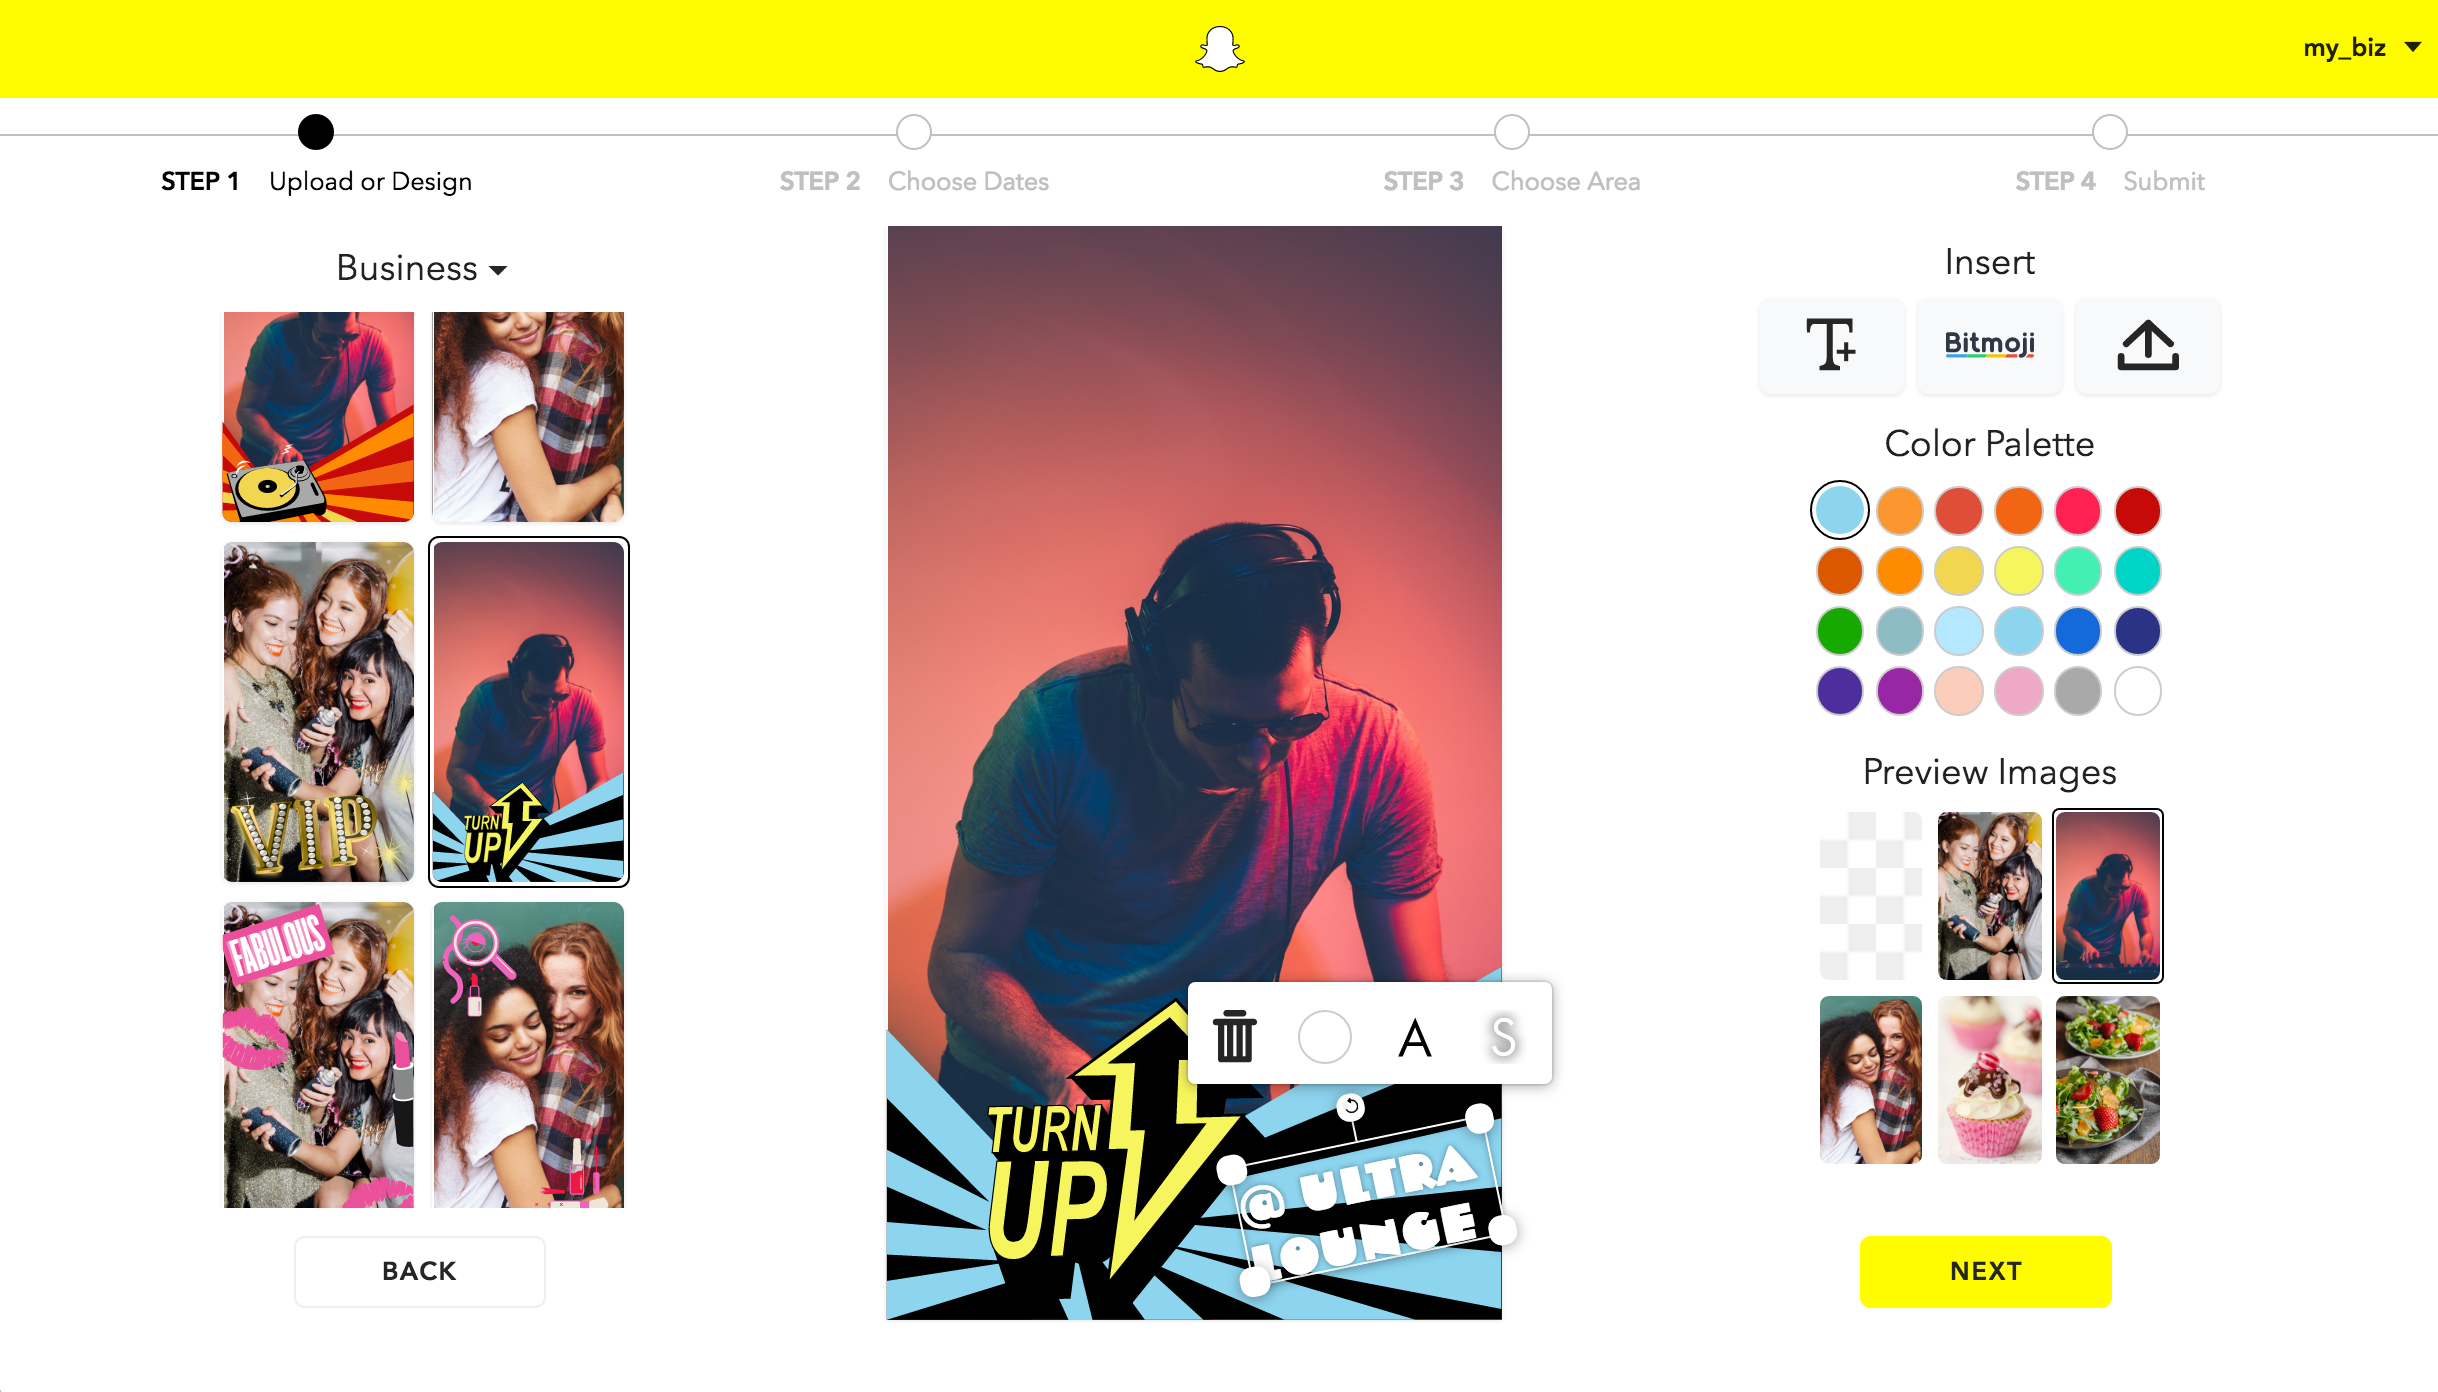 Snapchat's templates for business geofilters.